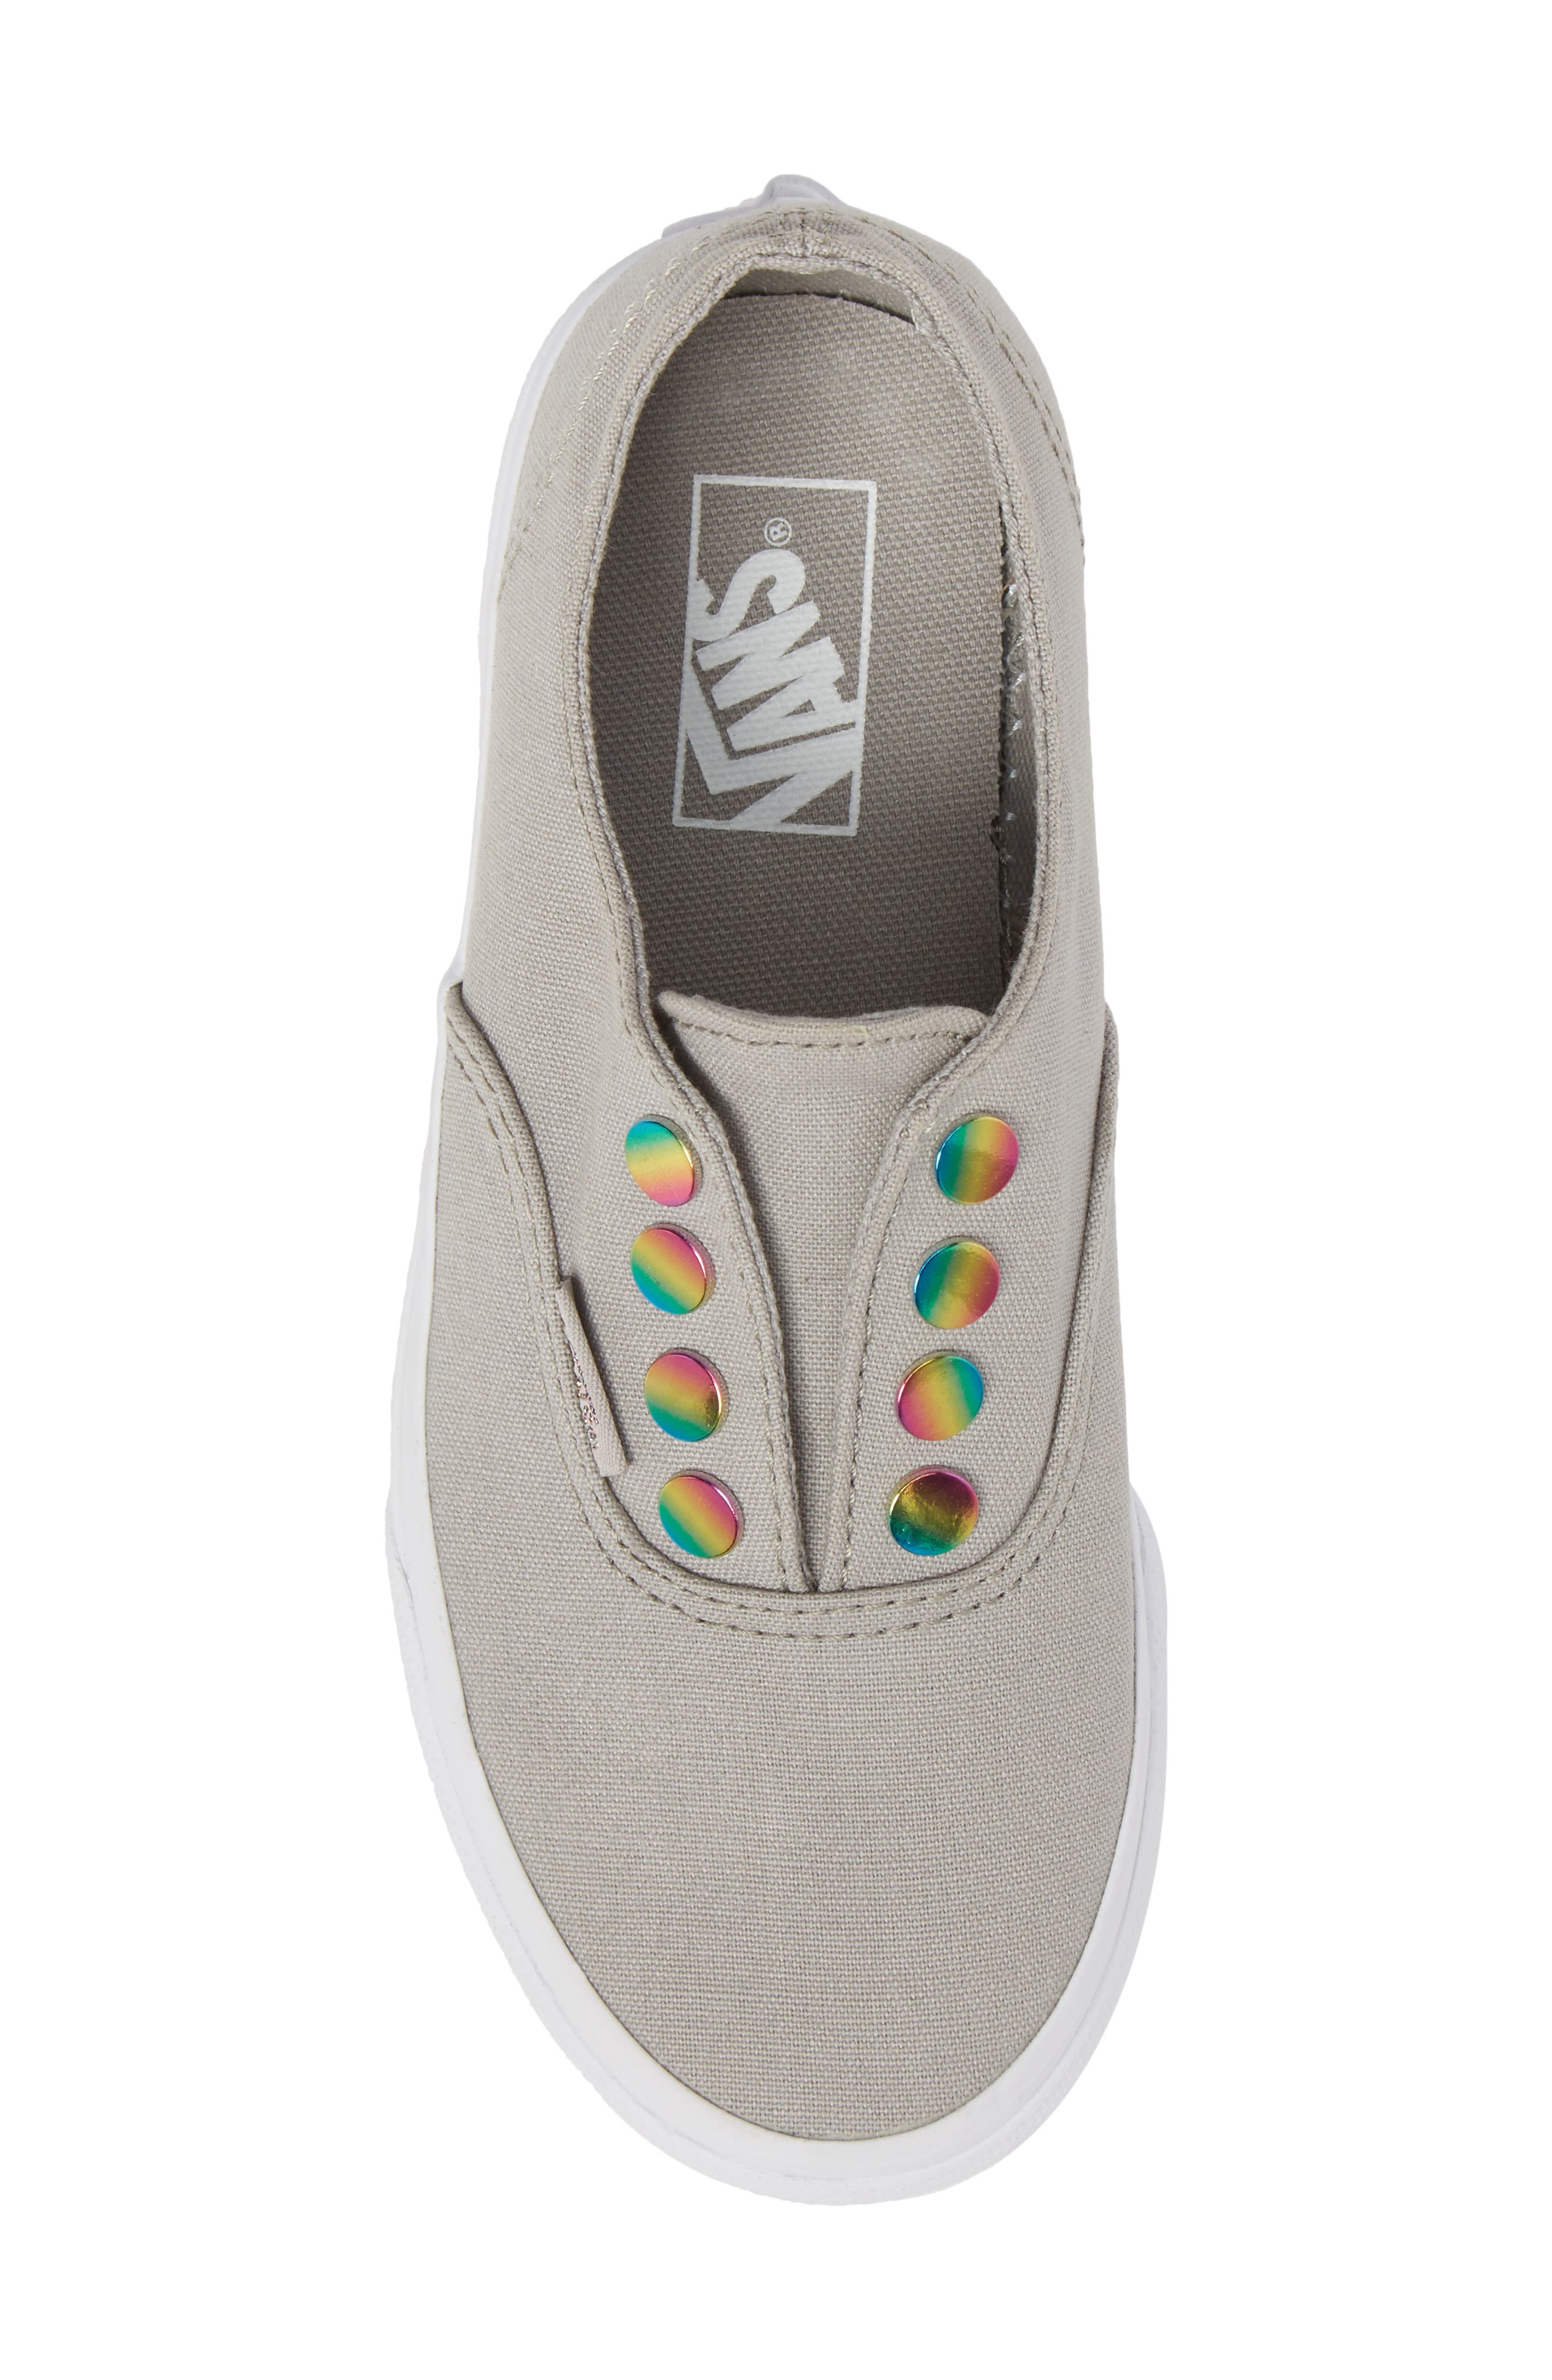 Authentic Gore Slip-On Sneaker,                             Alternate thumbnail 5, color,                             Drizzle/ Rainbow Eyelet